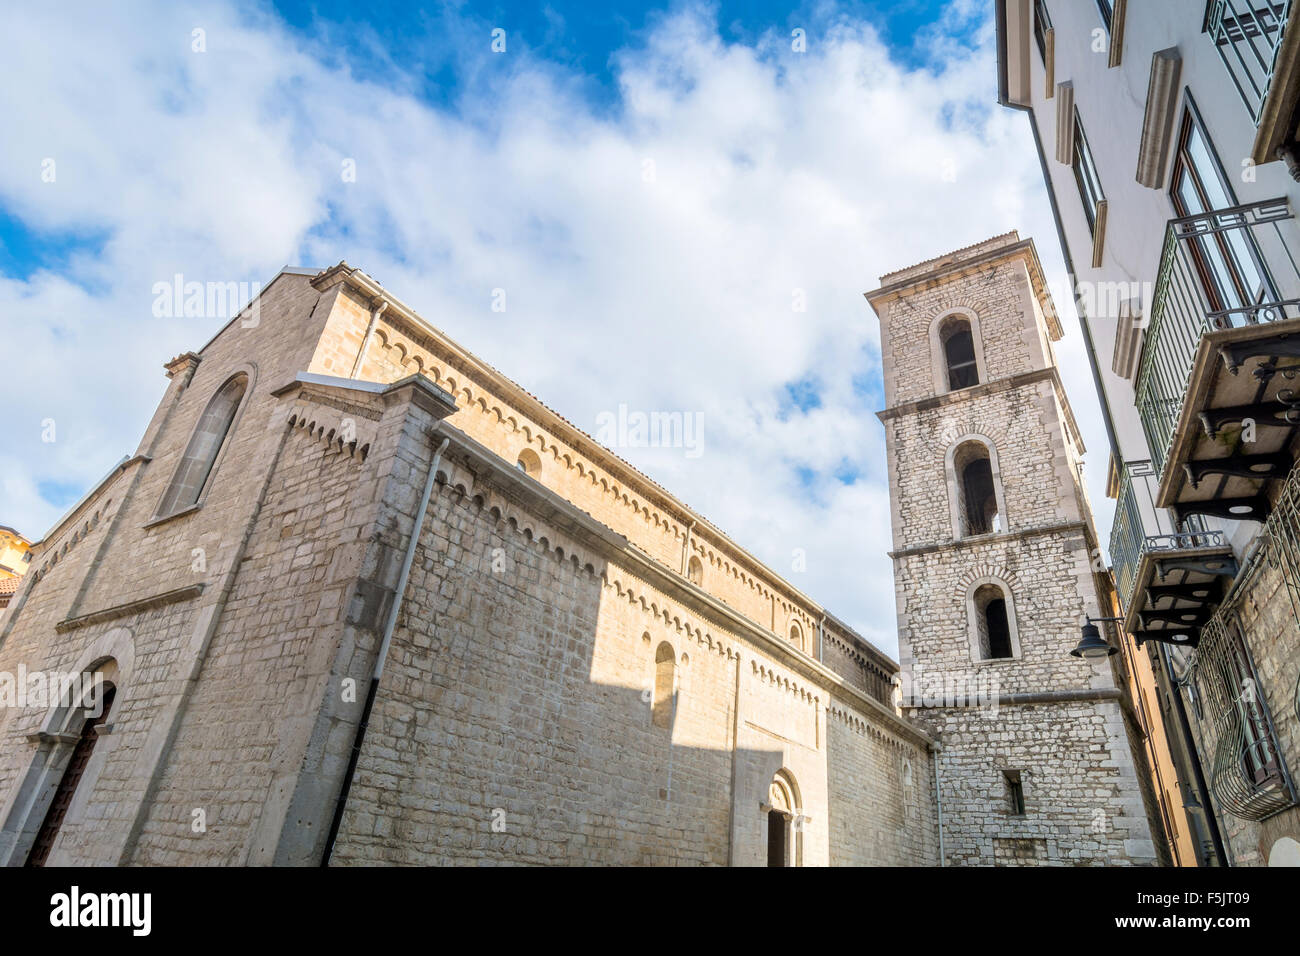 day view of church of San Michele arcangelo in Potenza, Italy - Stock Image